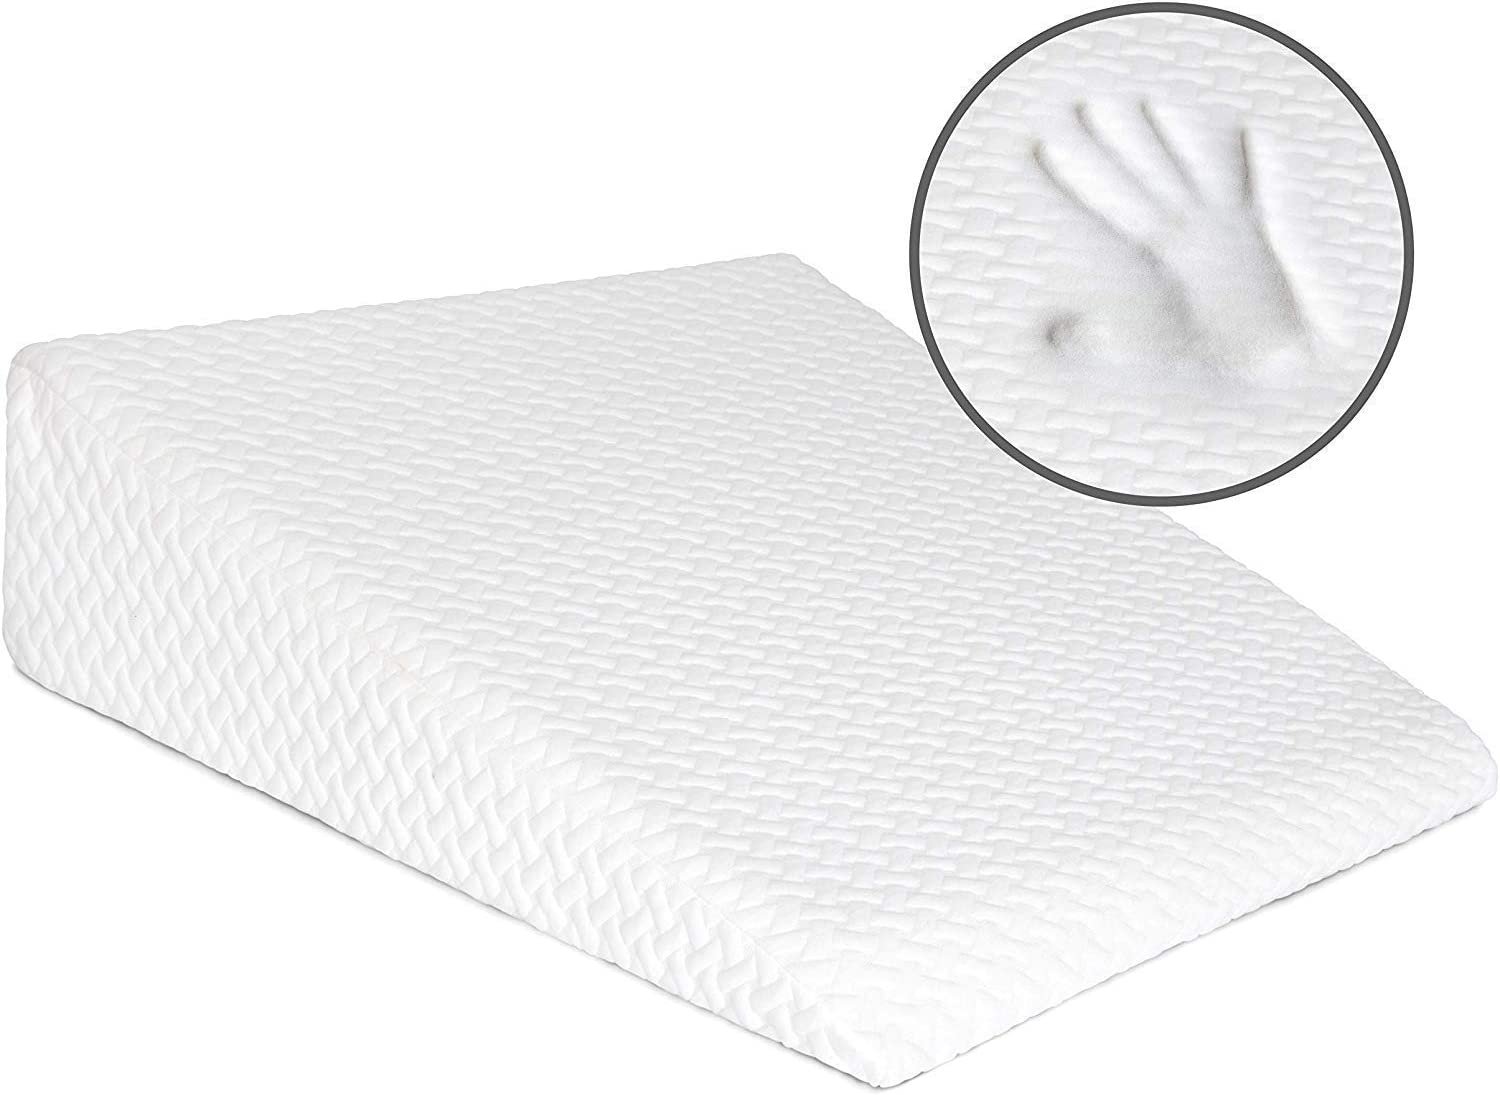 Milliard Bed Wedge Pillow with Memory Foam Top -Helps with Acid Reflux and Gerds, Reduce Neck and Back Pain, Snoring, and Respiratory Problems- Breathable and Washable Cover – 7.5 in